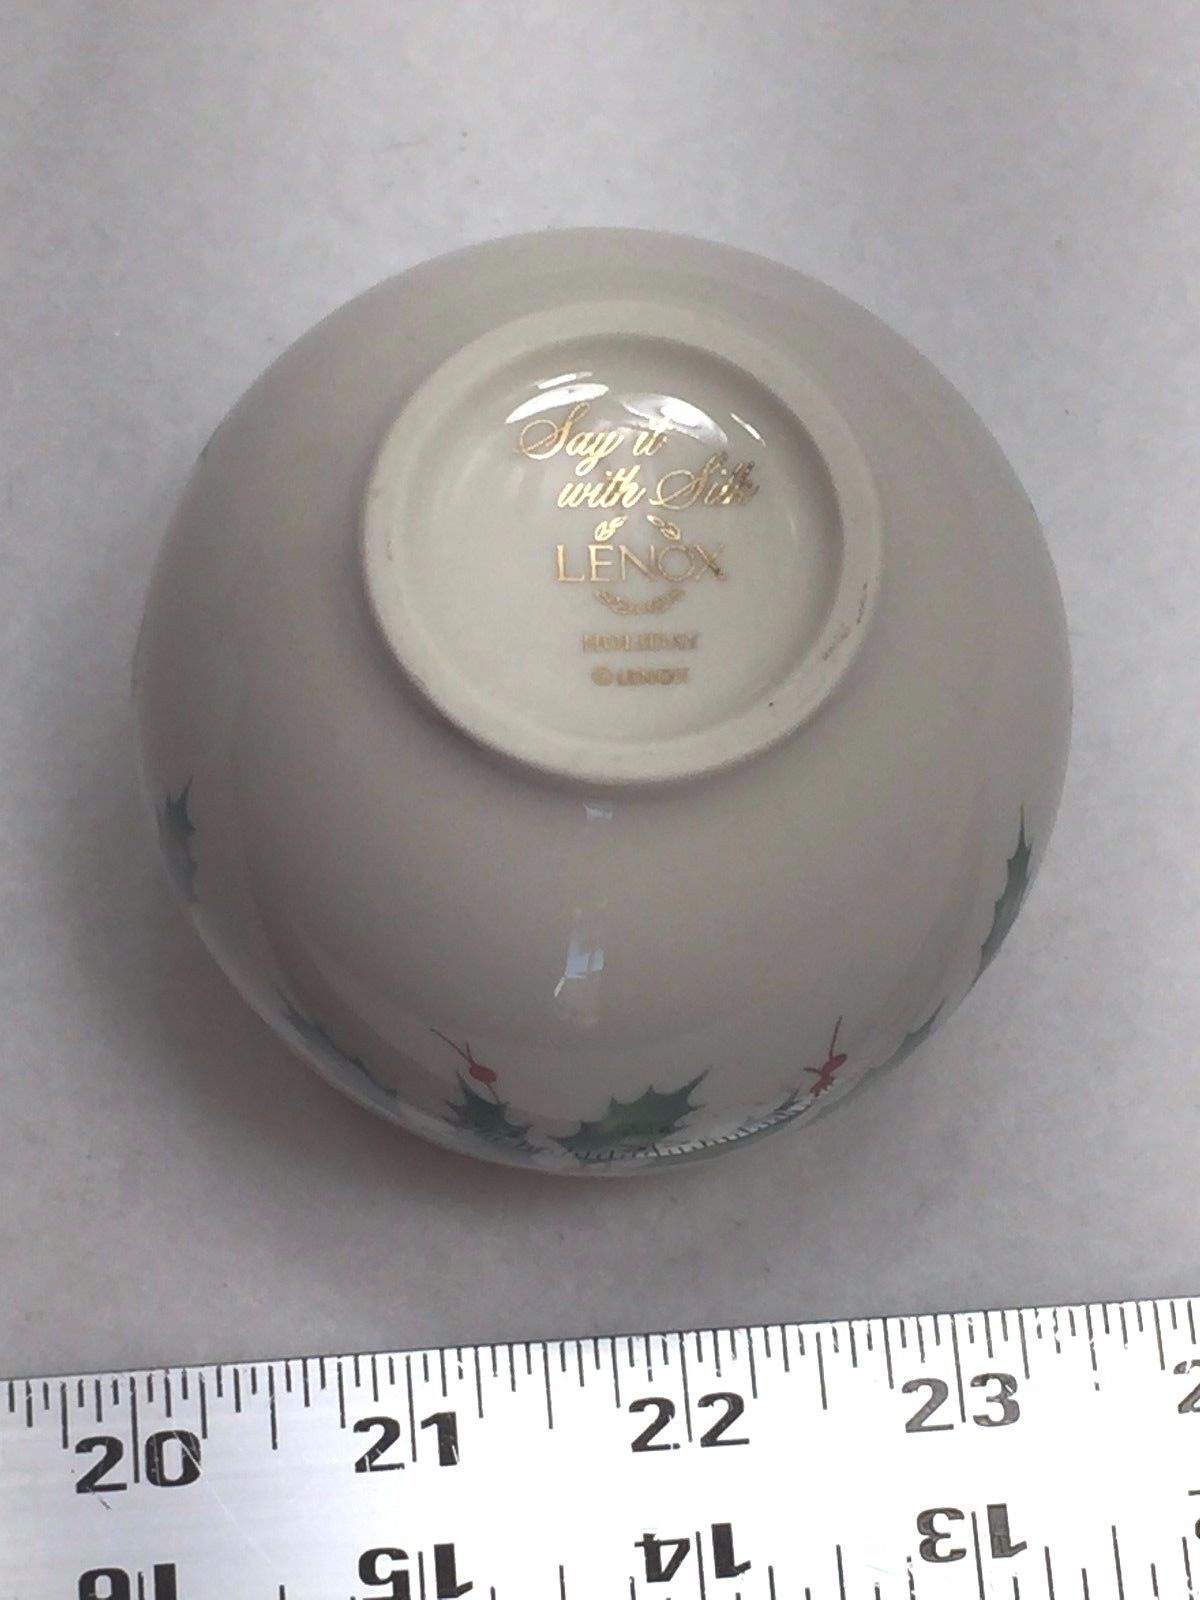 Lenox Porcelain Holiday Holly Votive Candle Holder Say it with Silk 22229